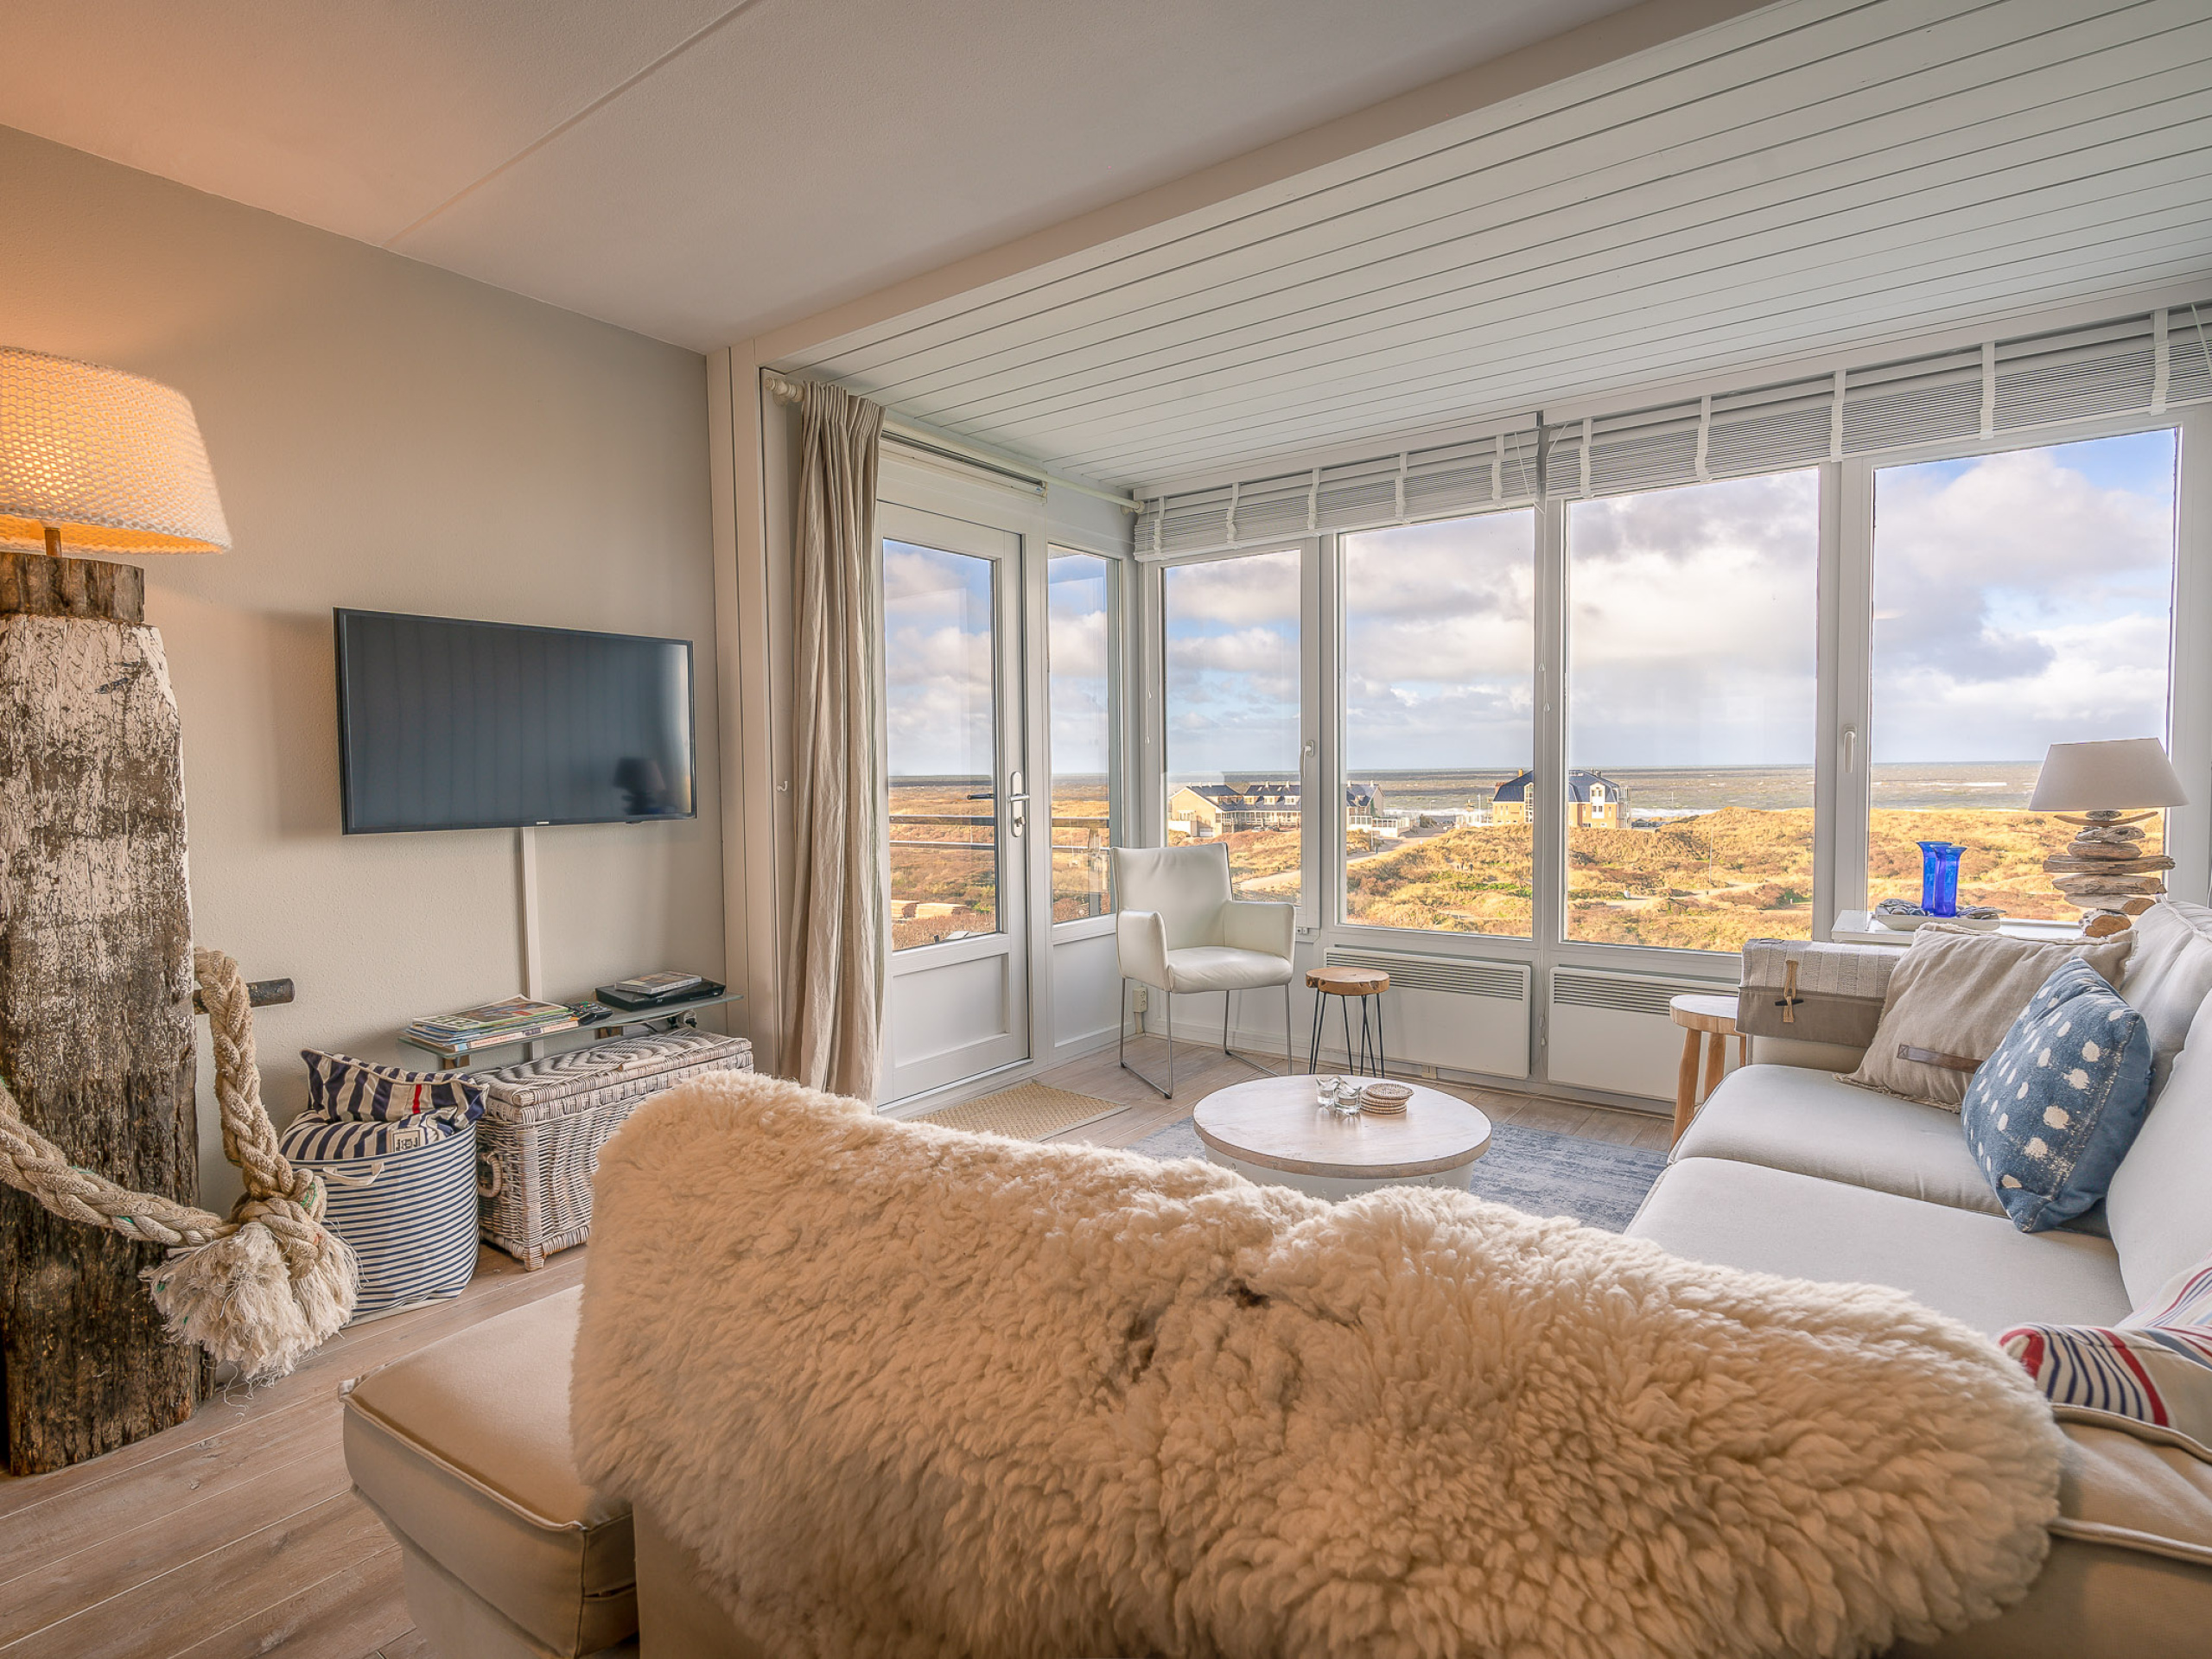 Charming apartment near De Koog with a view over the North Sea